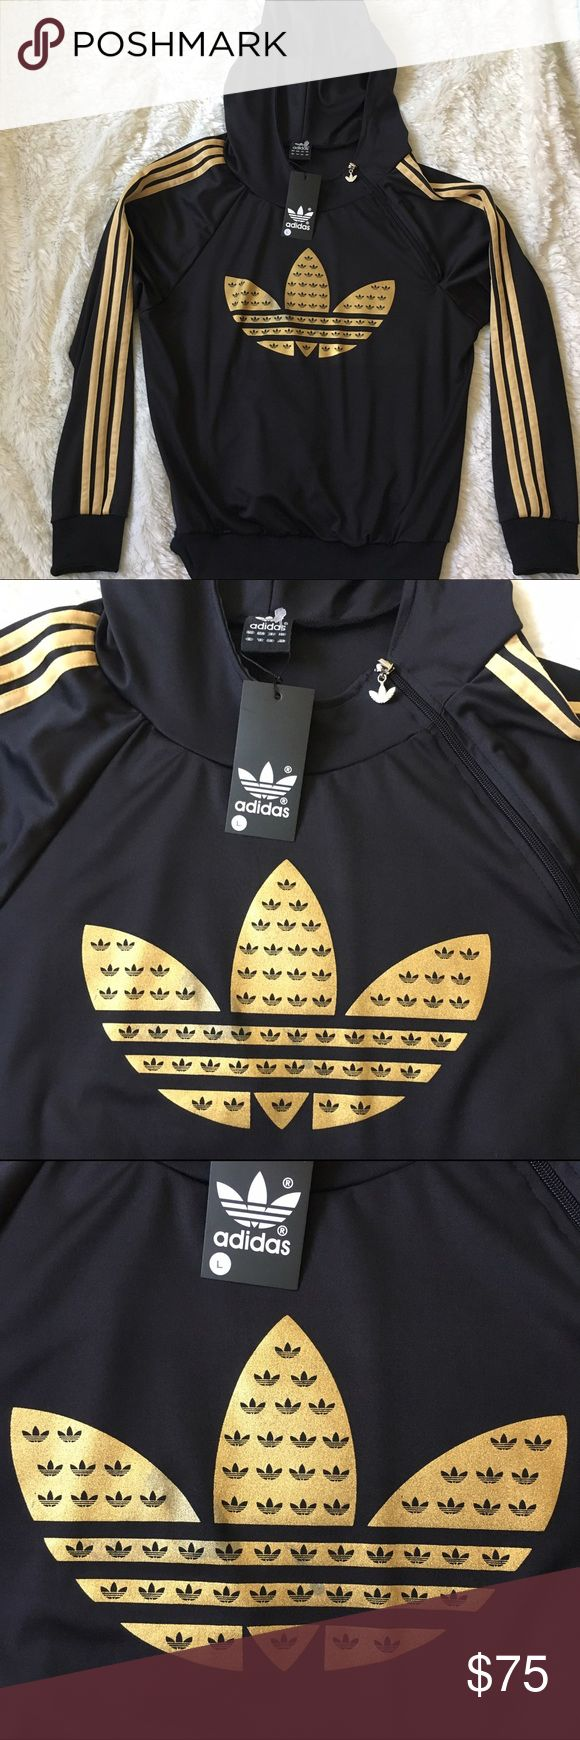 """Adidas Gold & Black Zip Sweater Hoodie Large Adidas Gold & Black Sweater Hoodie has a diagonal collar zip. Classic Adidas gold stripes along sleeves and adidas logo emblem in the middle on the sweater. New w/ tags however please see pics 2 & 3 for slight discoloration of spots on the logo. Very unnoticeable. Zipper has adidas logo attached. Hooded. Size Ladies Large but this runs a little small. Measurements when laid flat: Armpit to armpit is 21"""" & length is 24.5"""". Check out matching sweat…"""